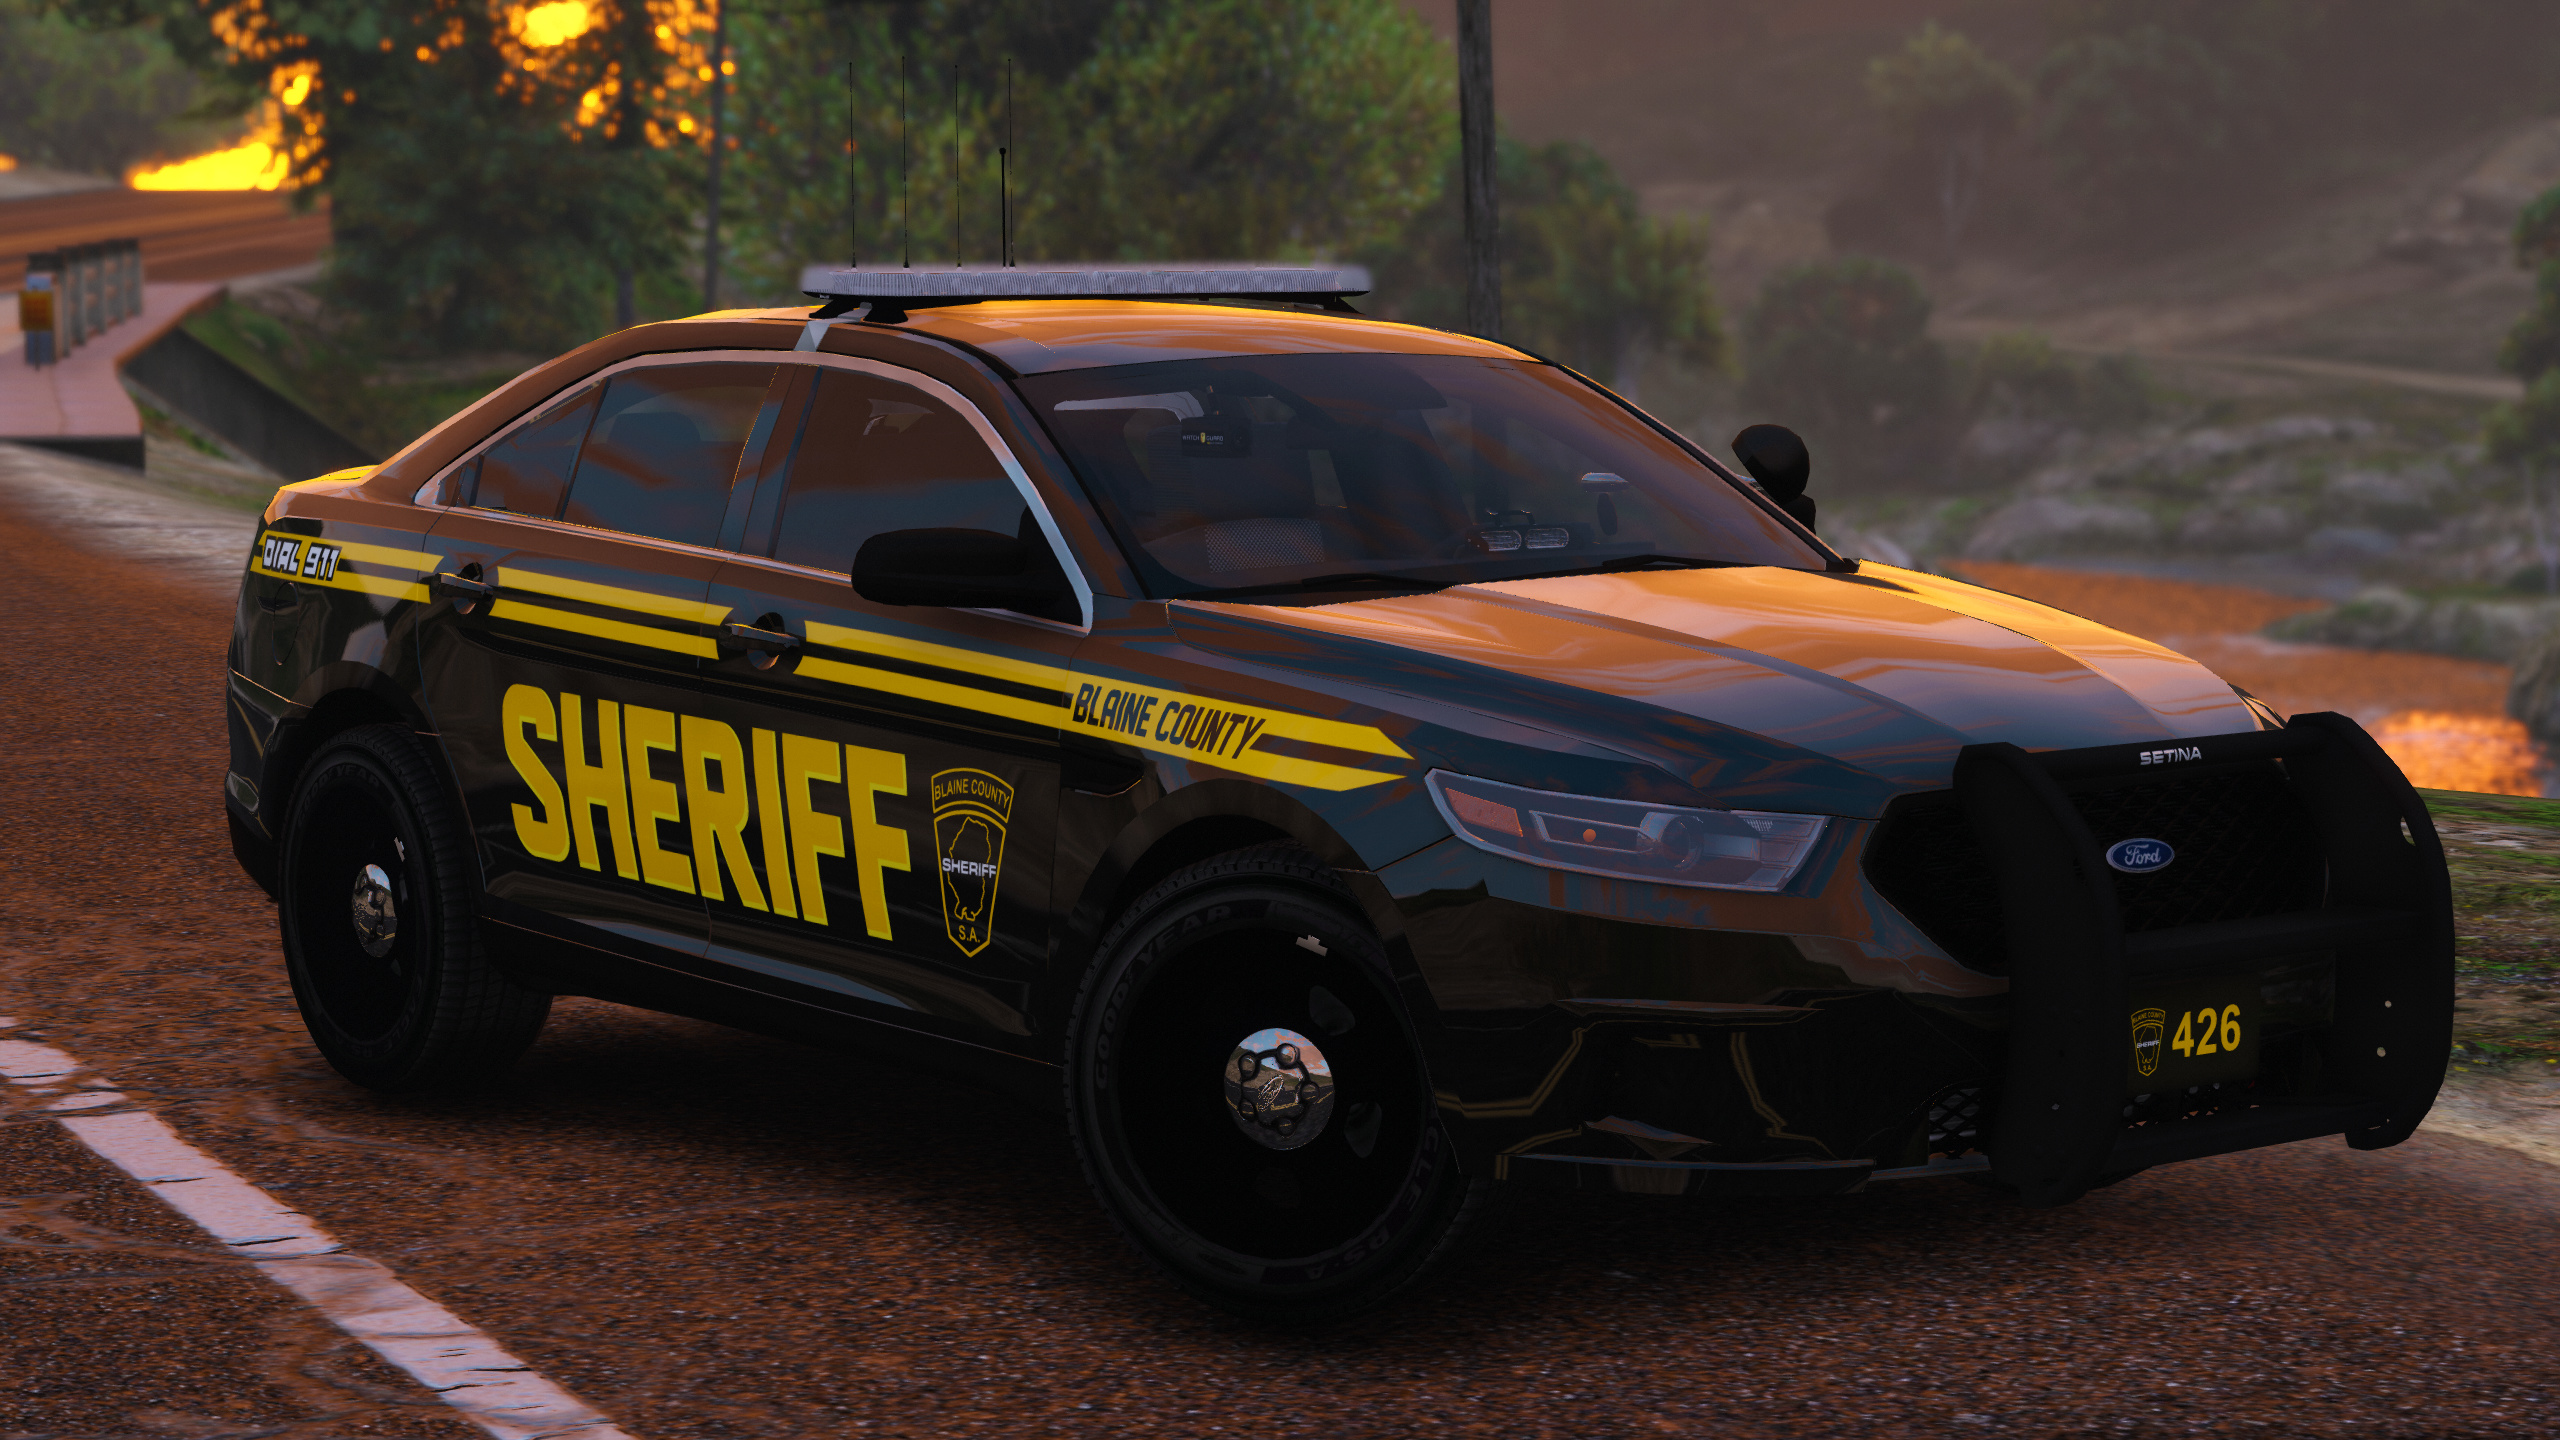 Release] Law Enforcement Vehicle Pack | ELS Only - Releases